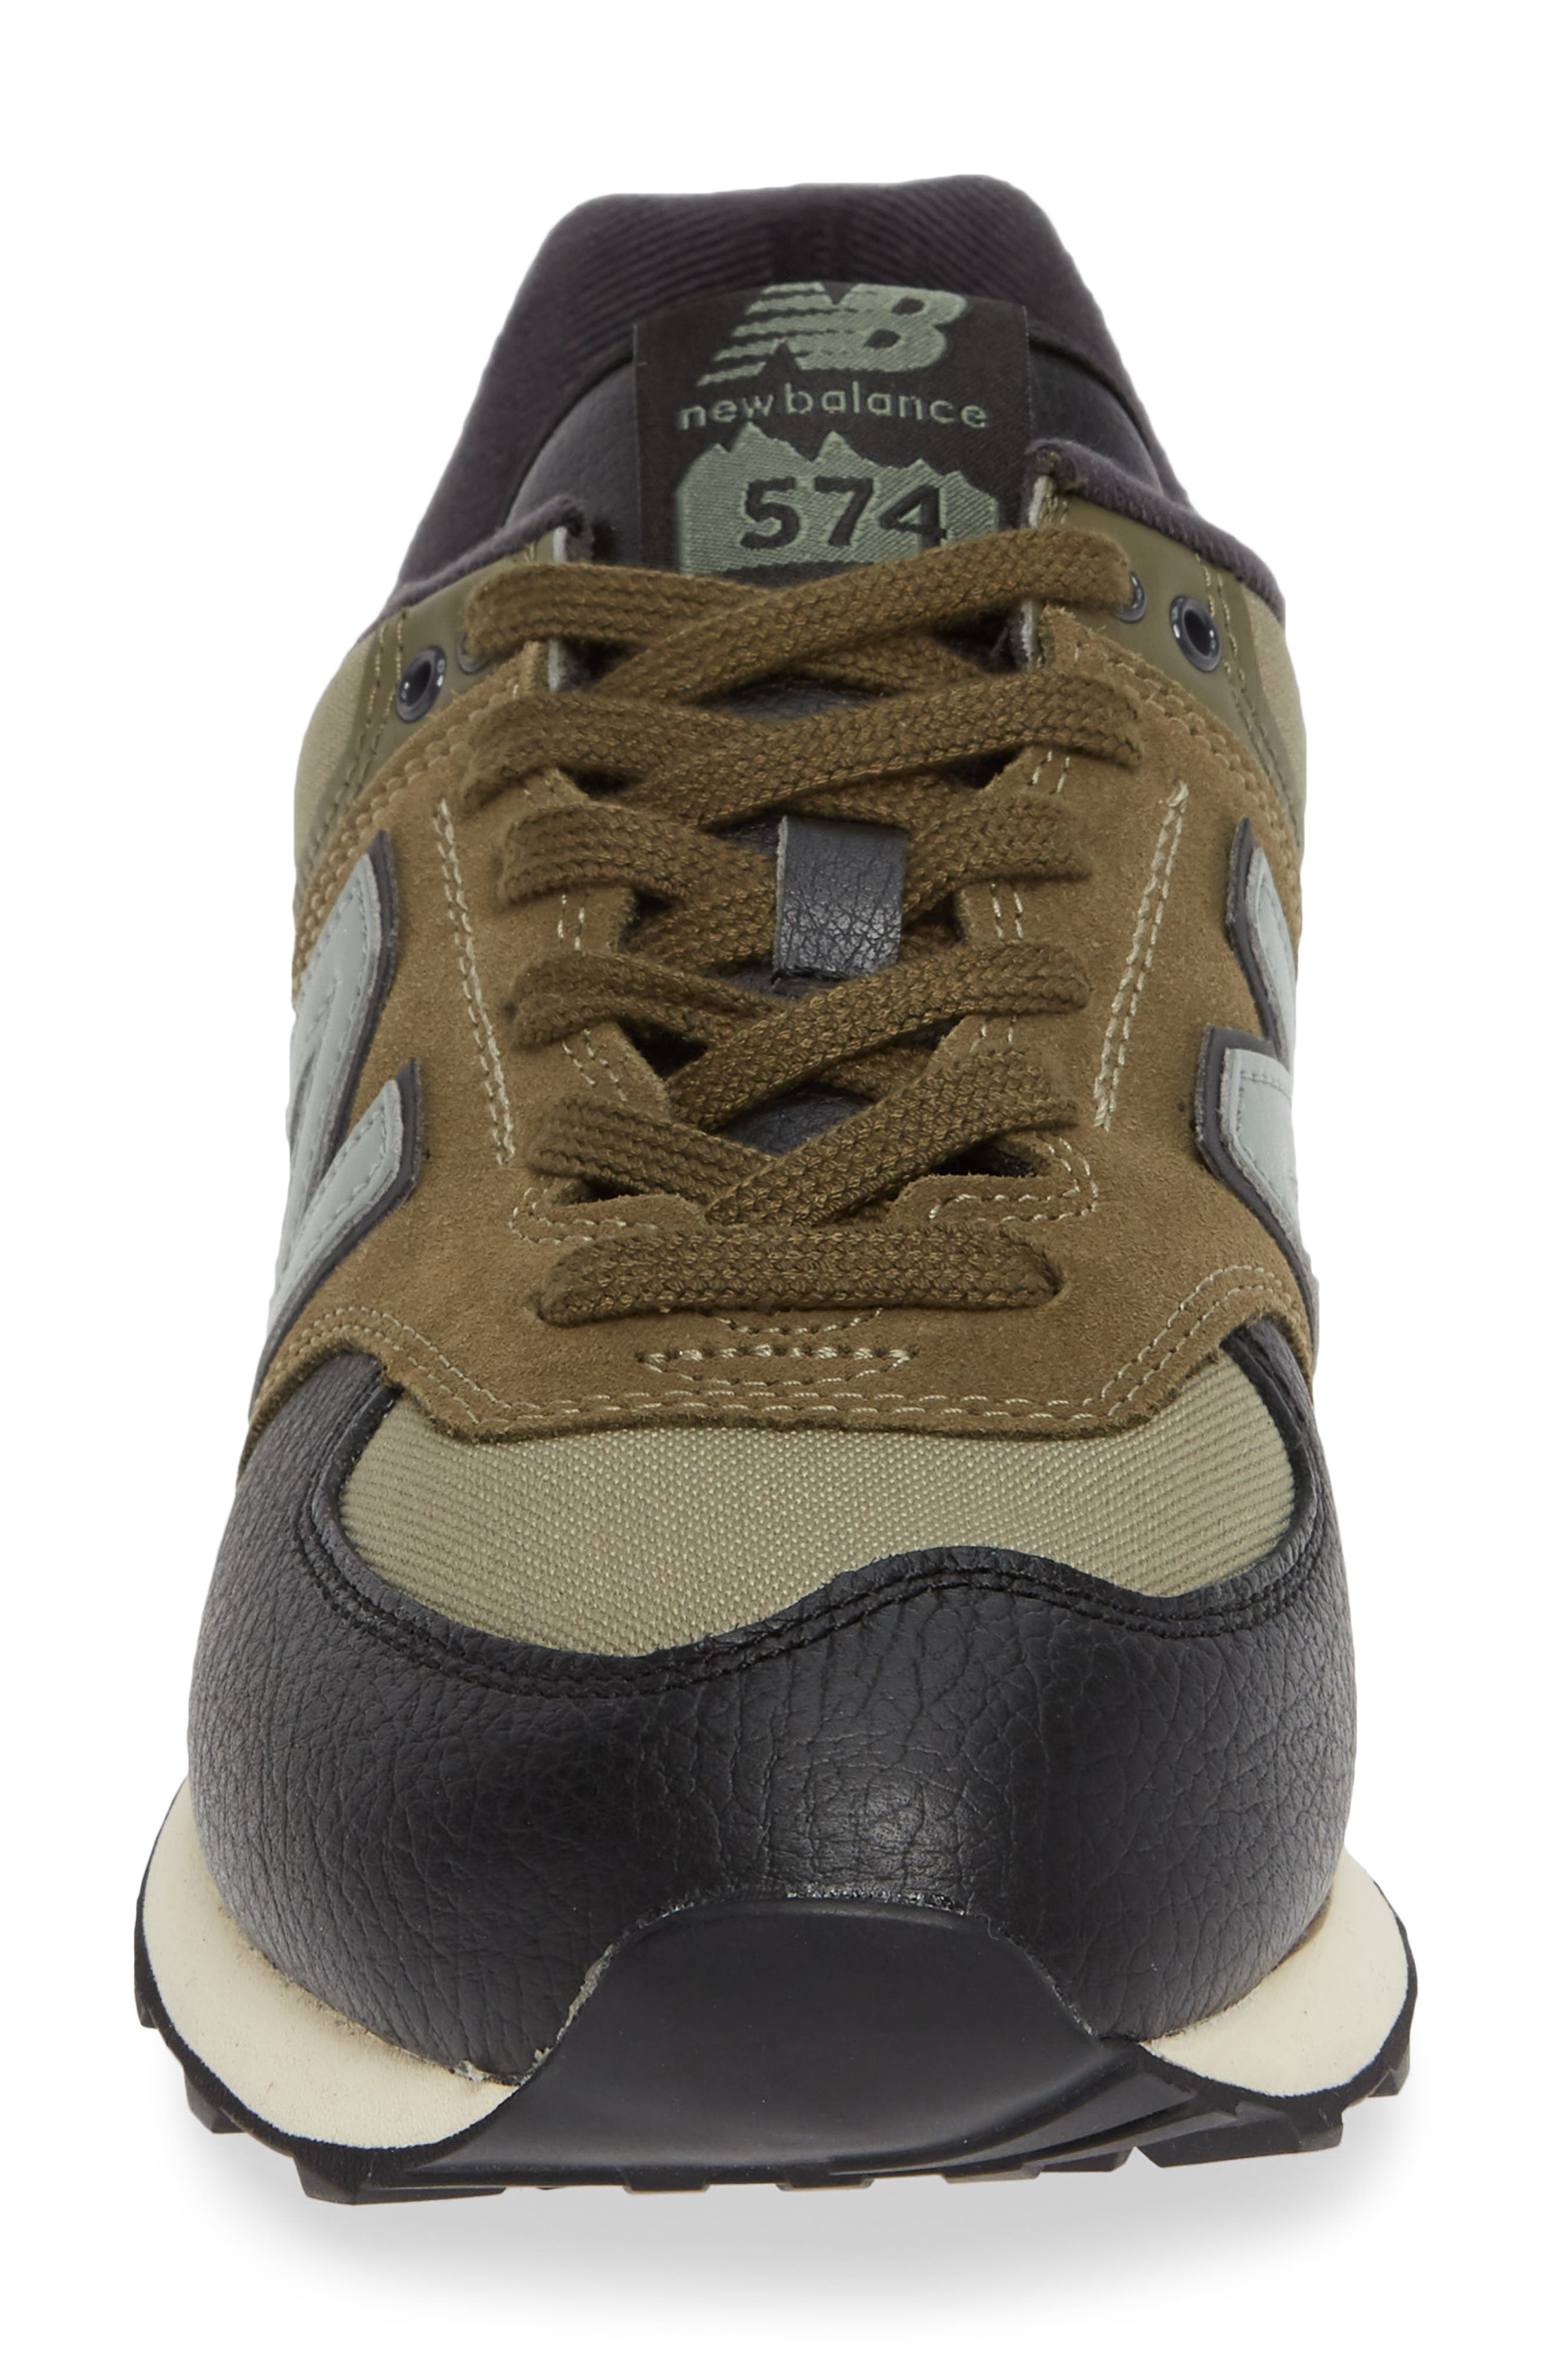 574 Classic Sneaker,                             Alternate thumbnail 4, color,                             COVERT GREEN SUEDE/ TEXTILE